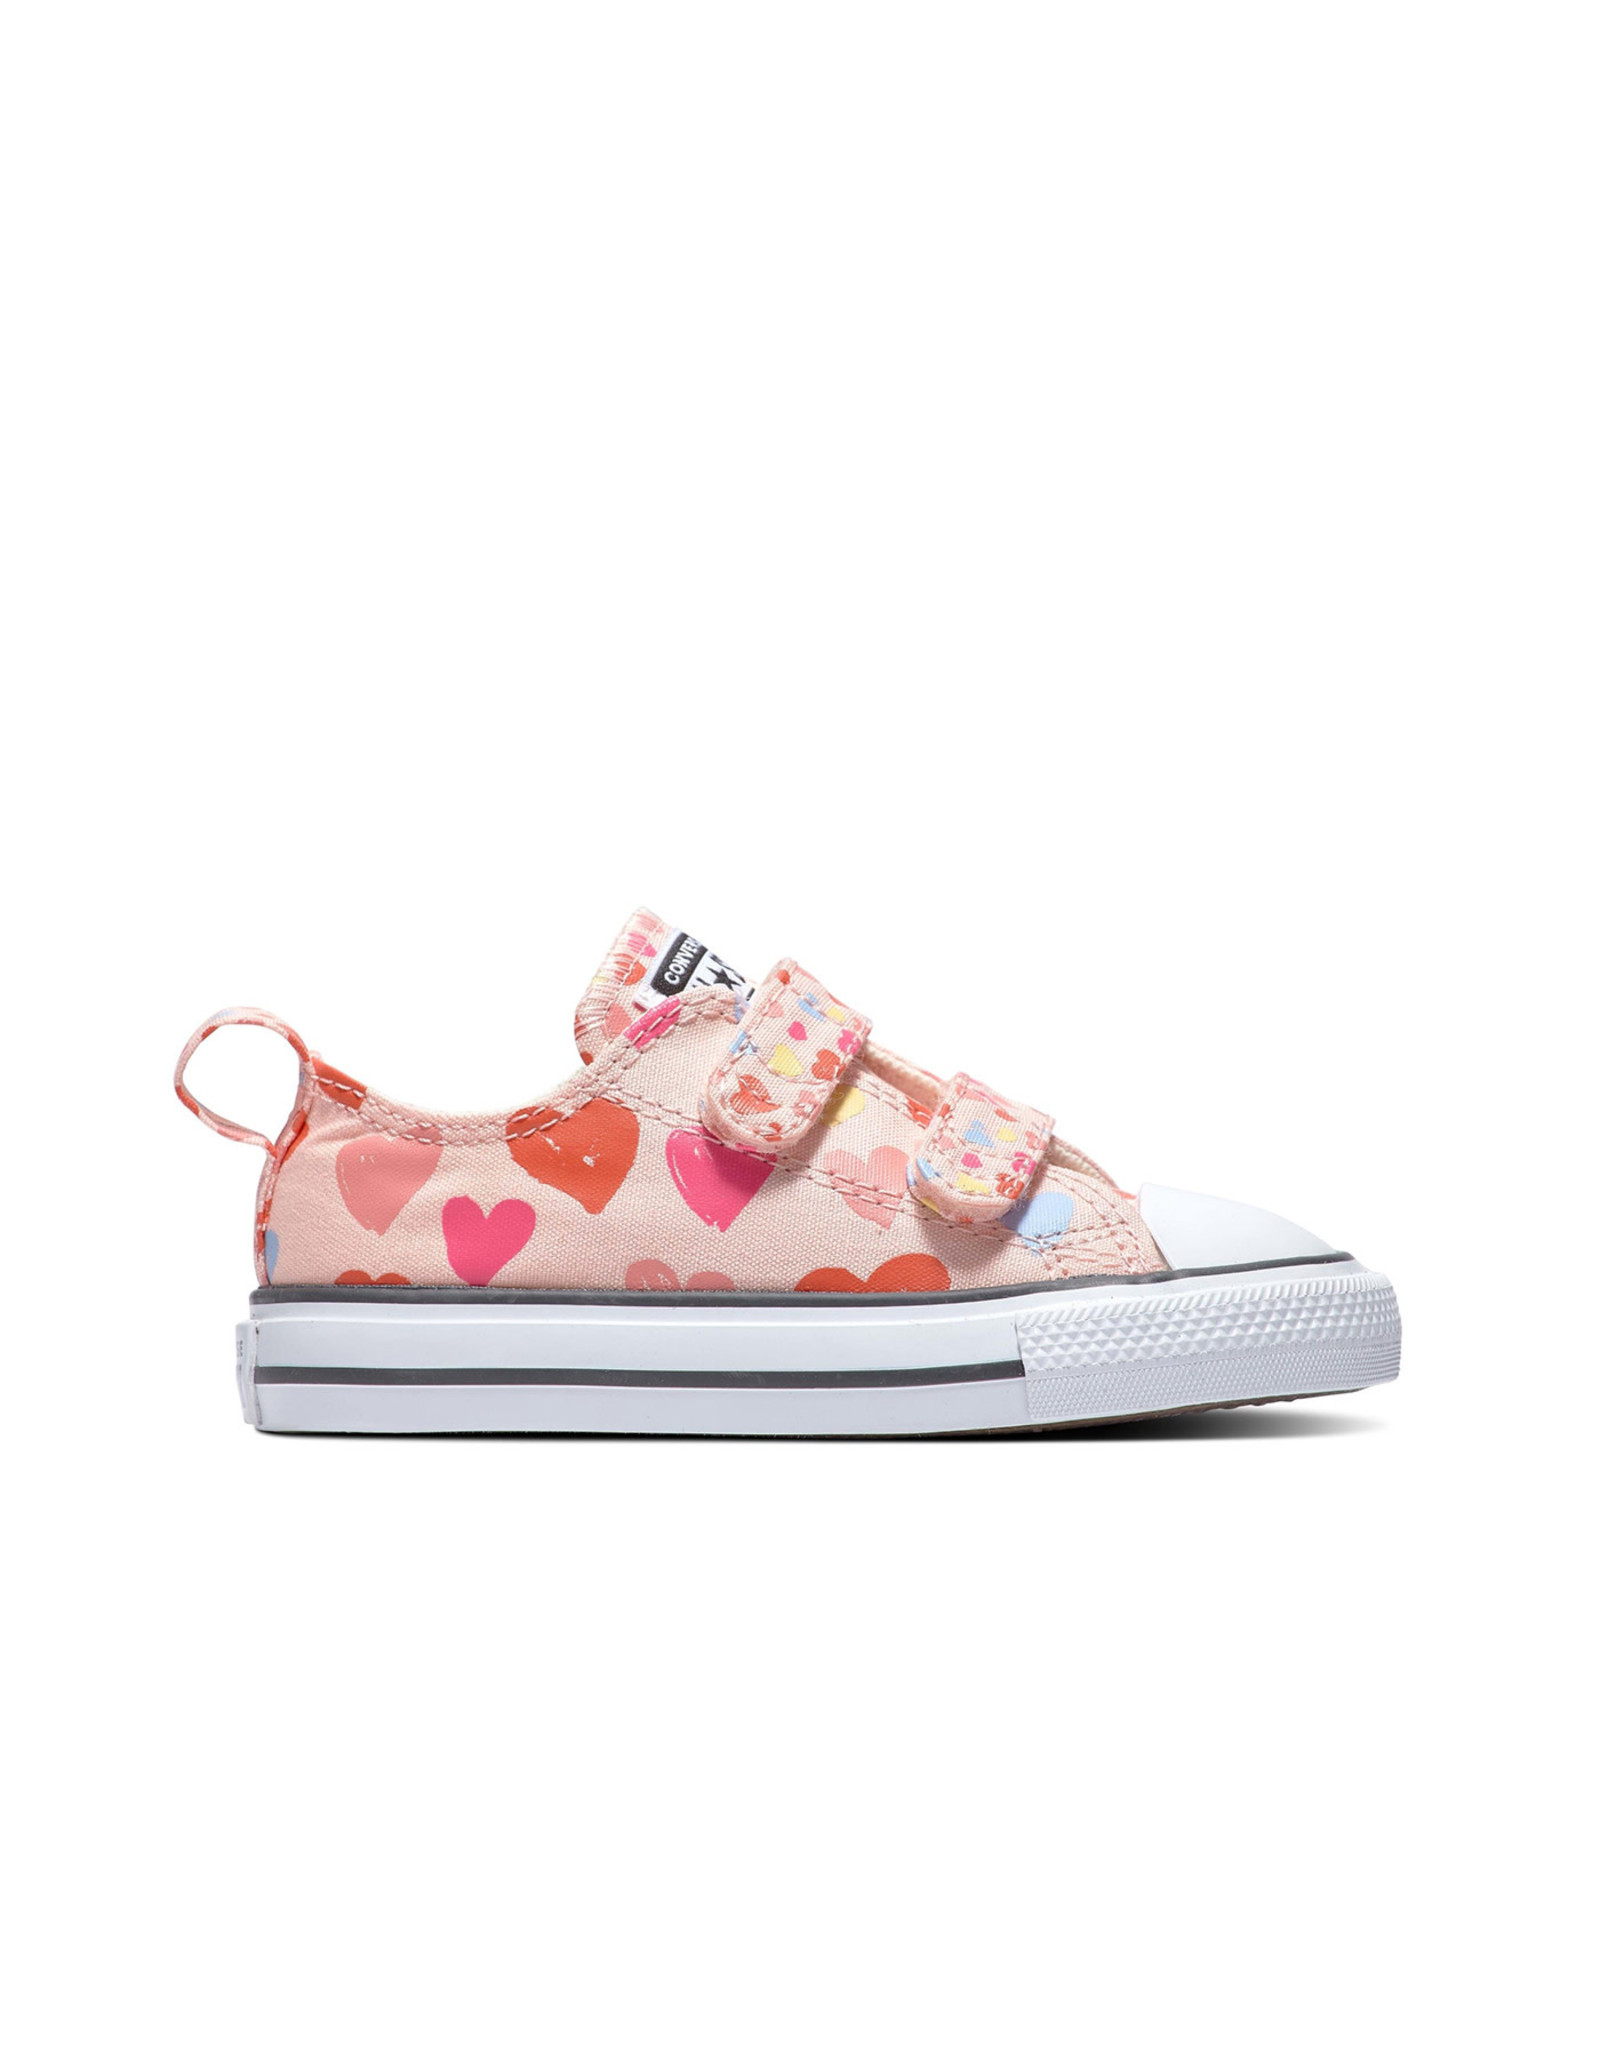 CONVERSE Chuck Taylor All Star 2V OX STORM PINK/NATURAL IVORY CMVLO-771610C